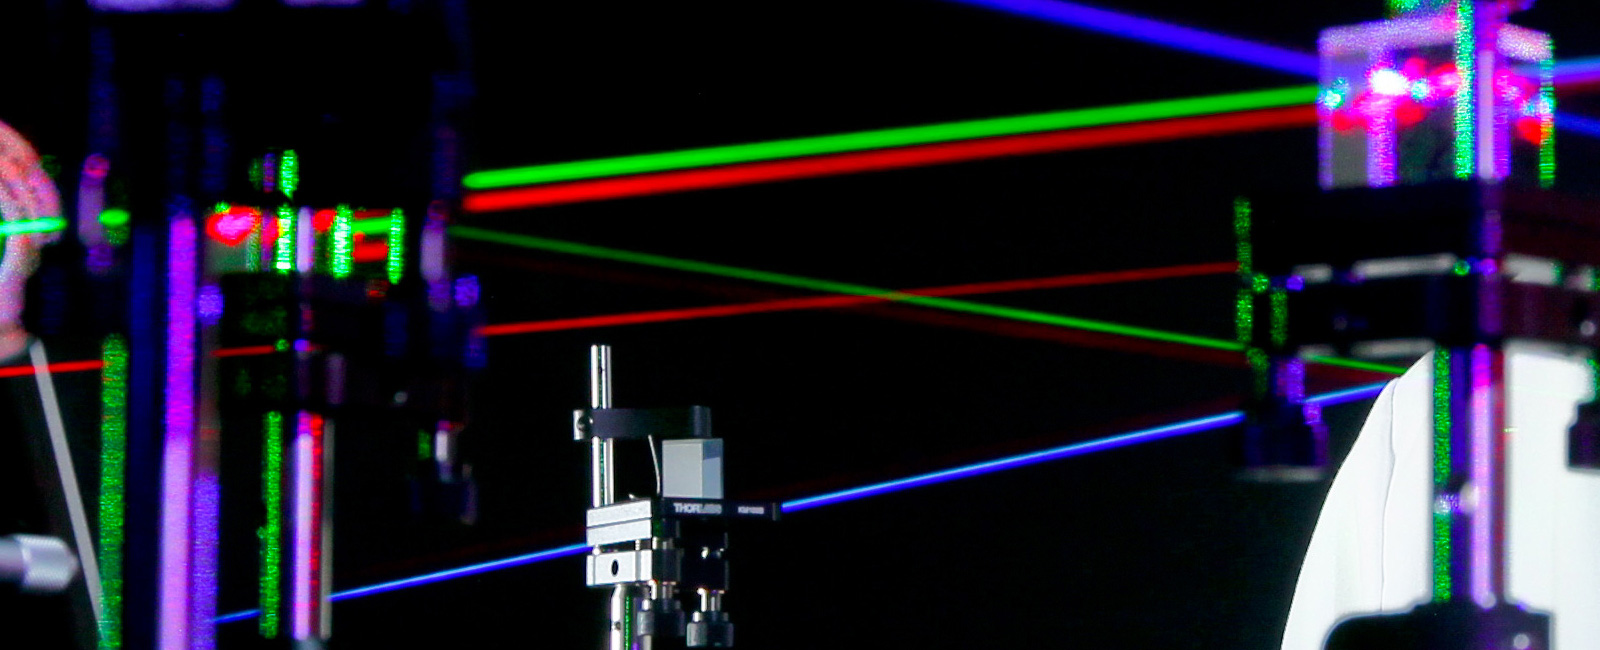 Daniel King, a microwave/electro-optic (MS32) electronics engineer at Naval Surface Warfare Center (NSWC), Corona Division, uses visible lasers to align various optical components.